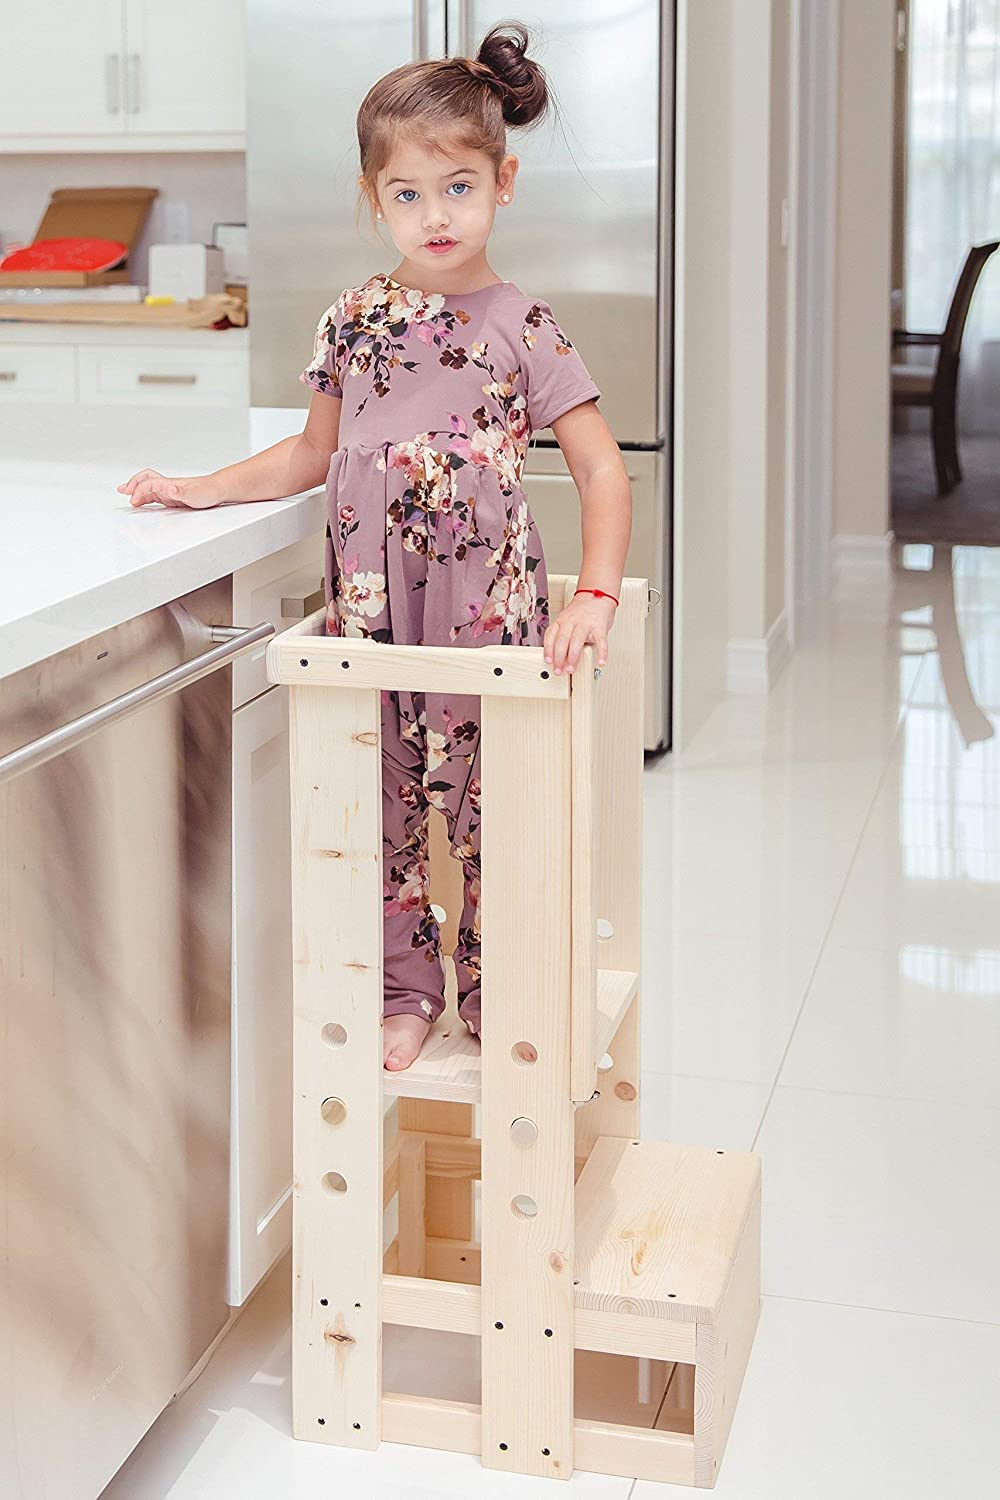 Toddler Safety Stool, Kitchen Helper